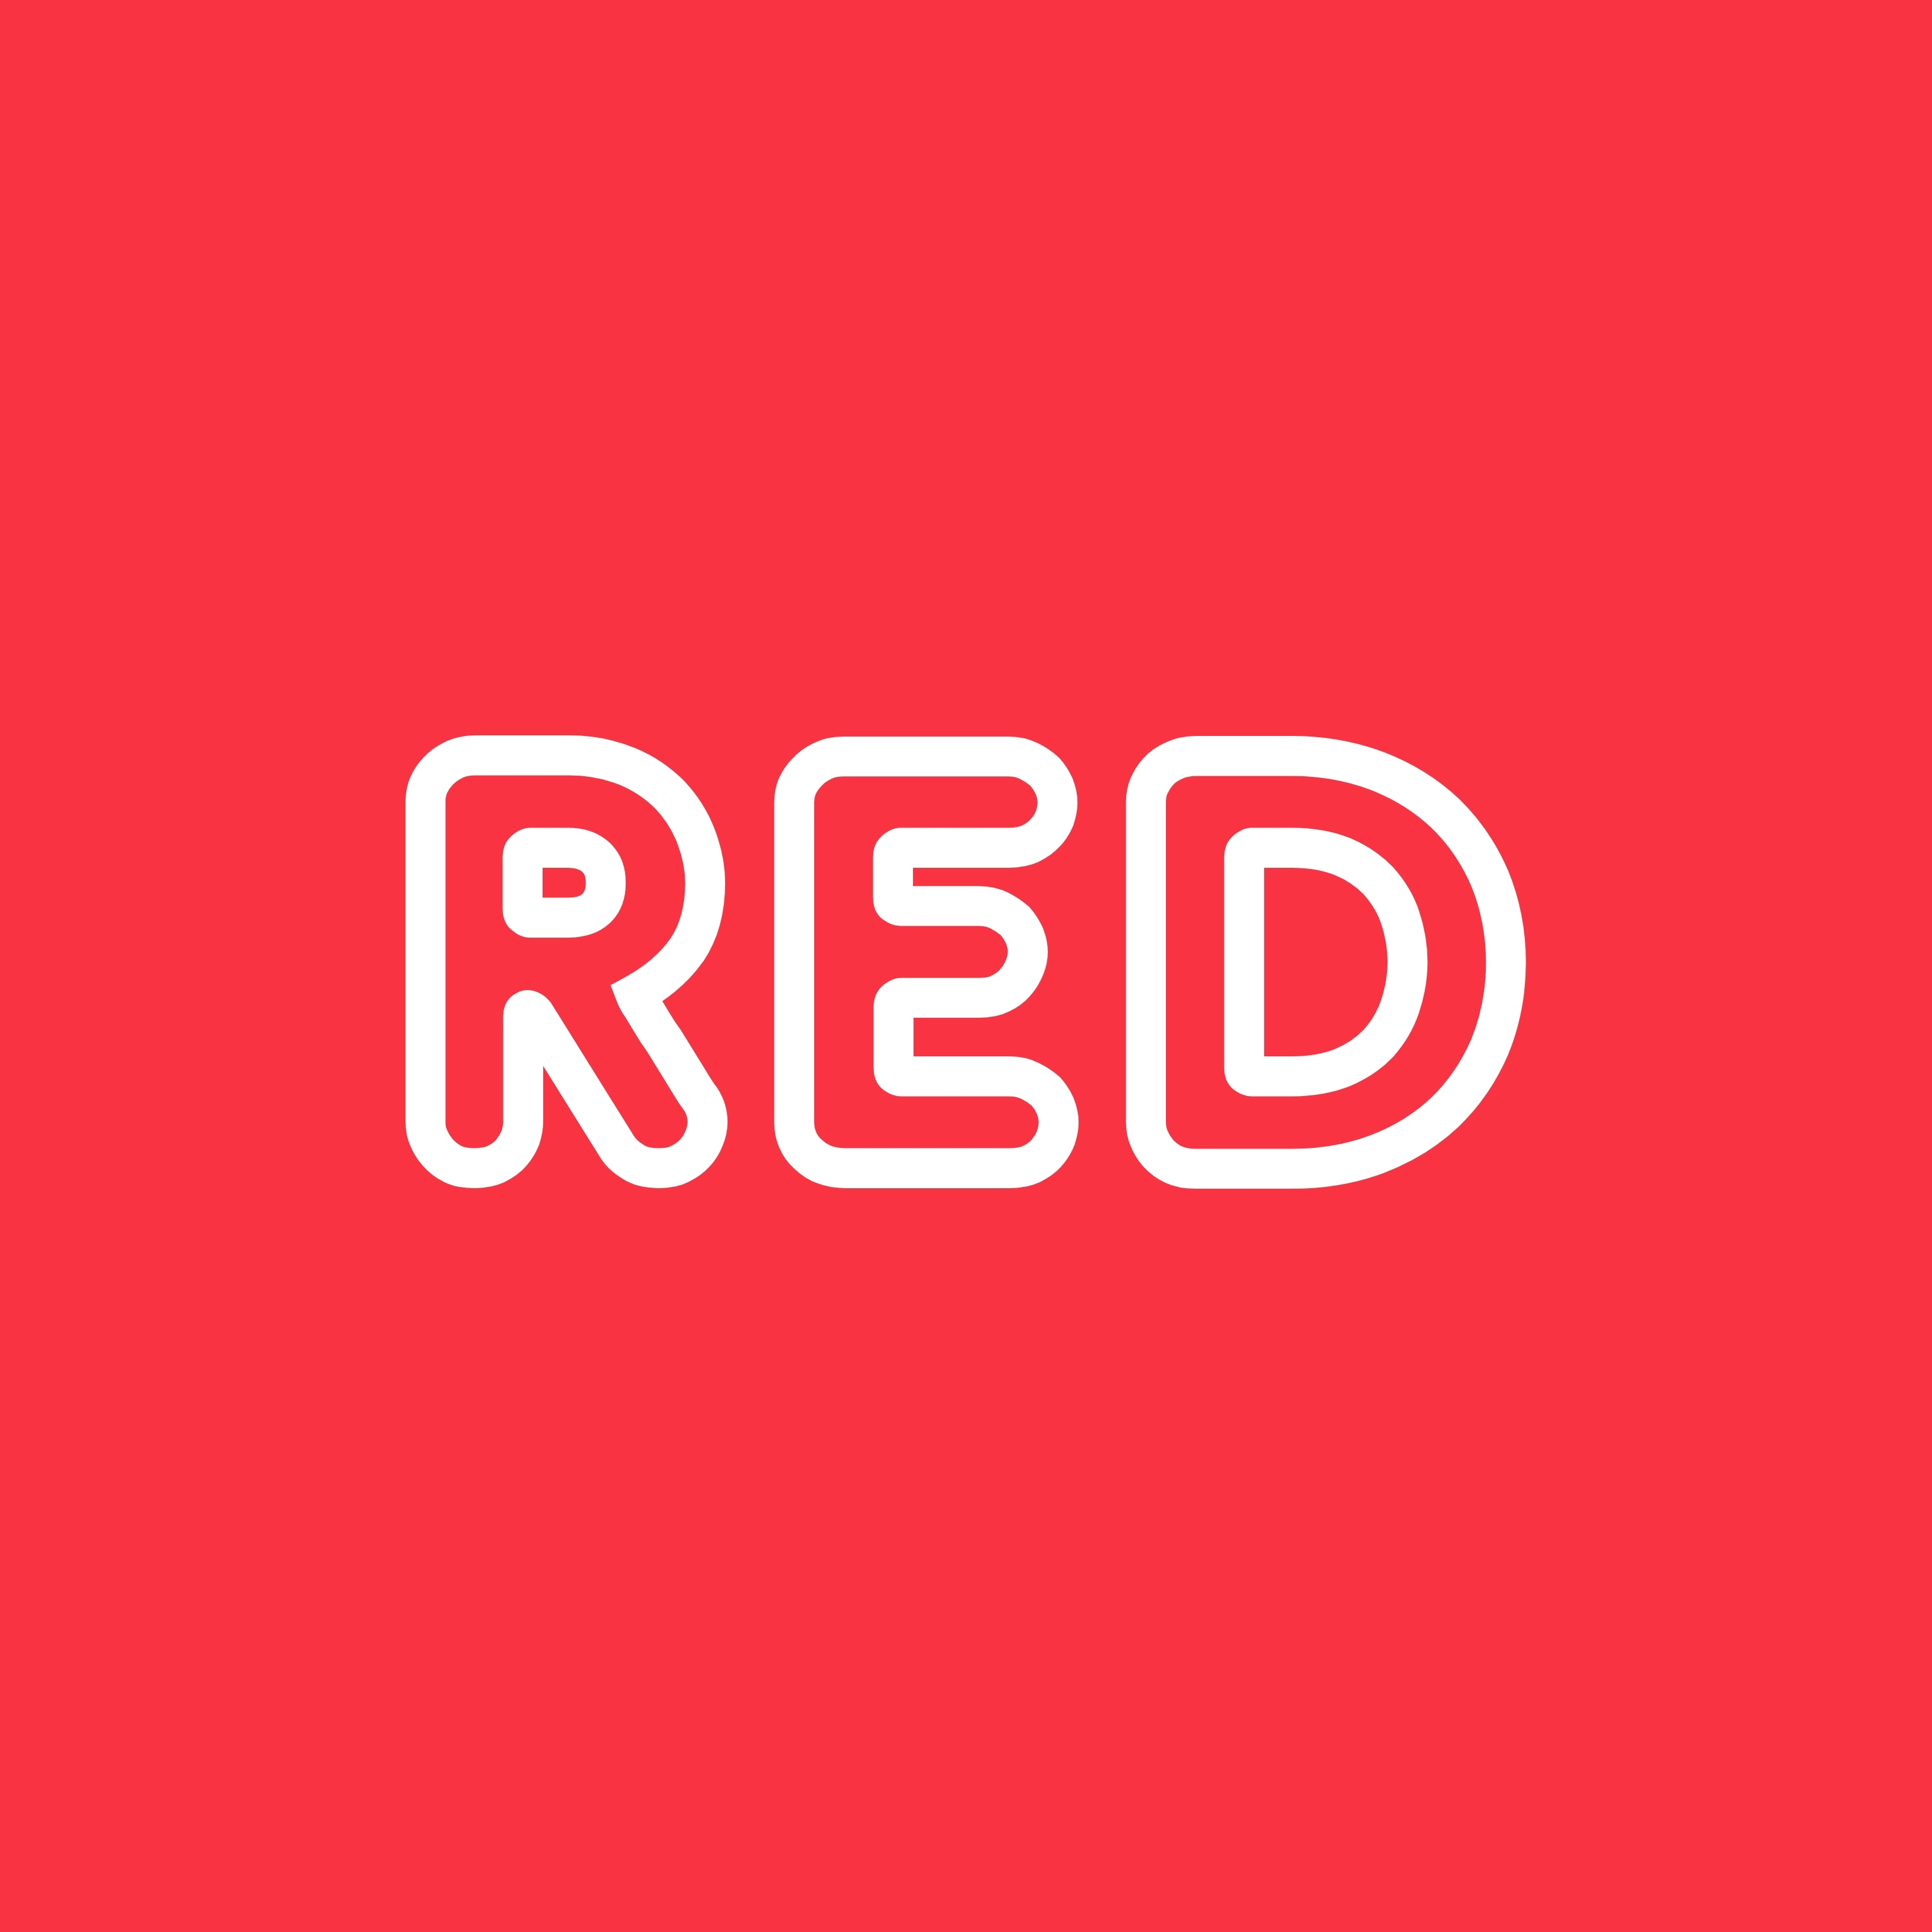 Red Background iPad Wallpaper